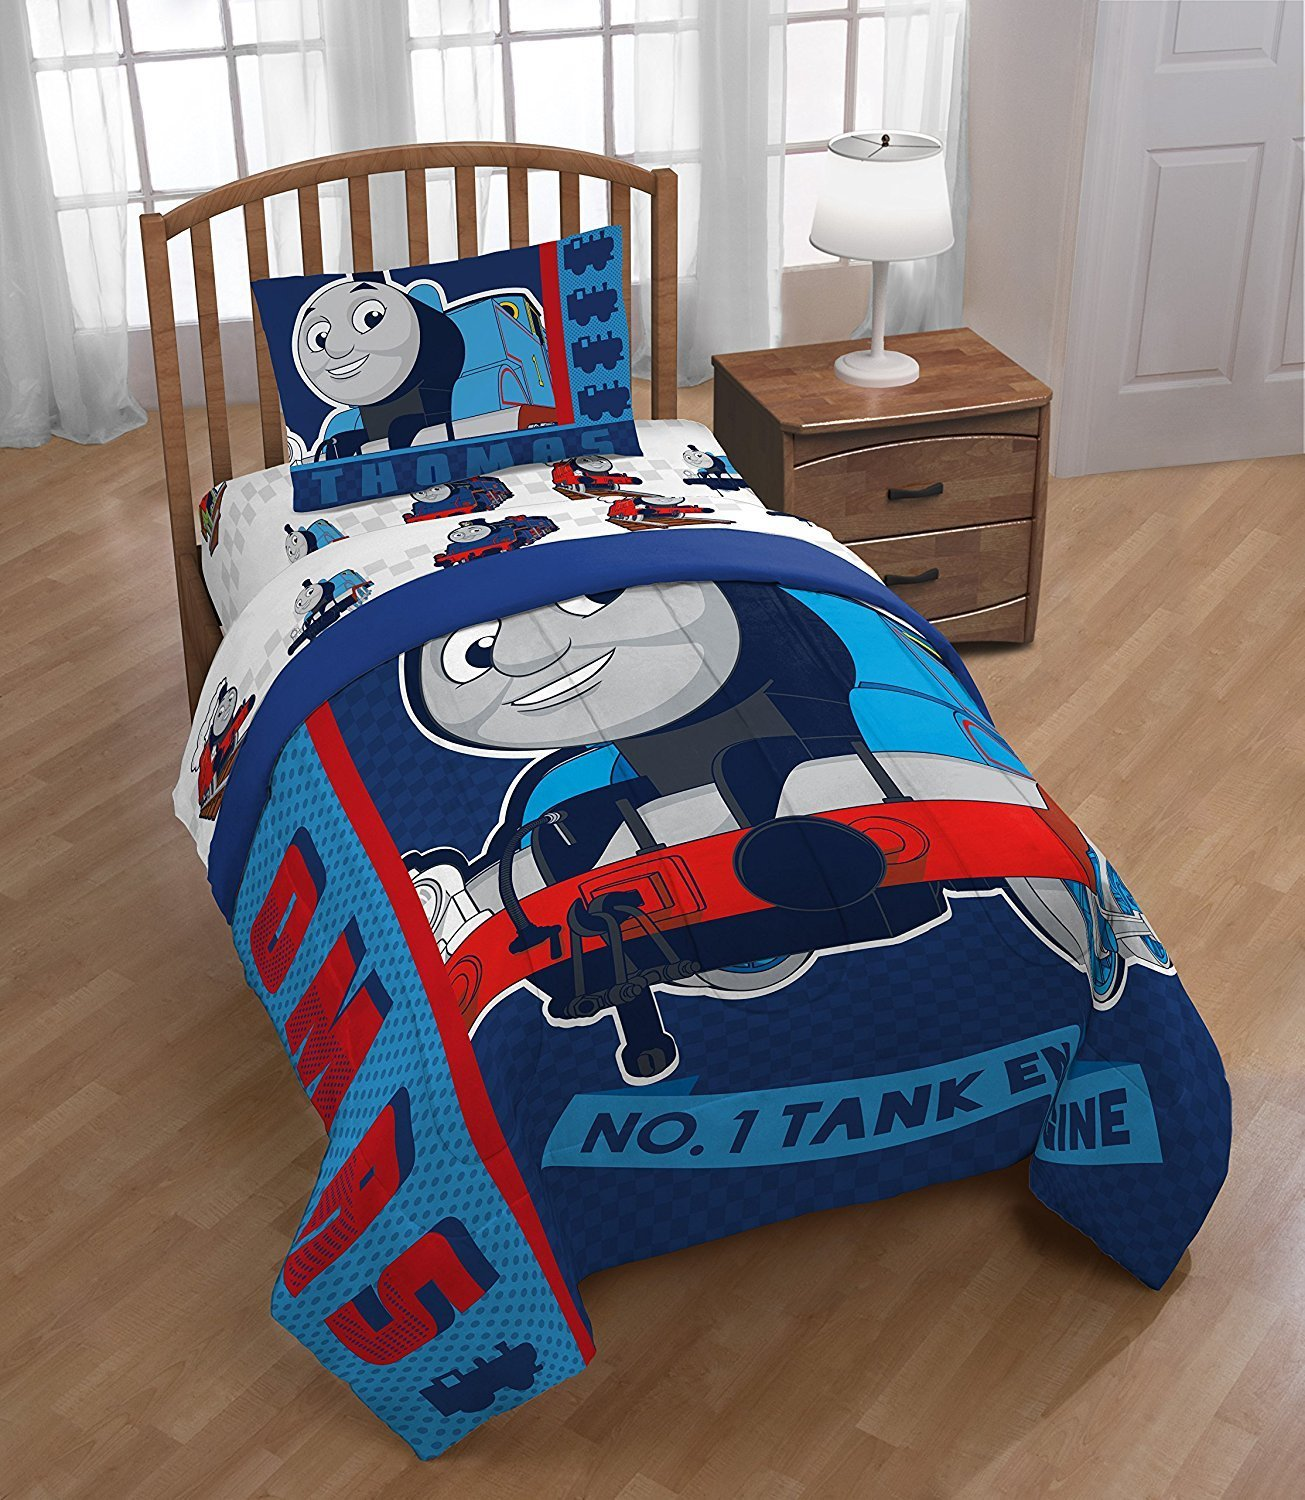 Thomas & Friends Twin Comforter And Sheet Set With Throw